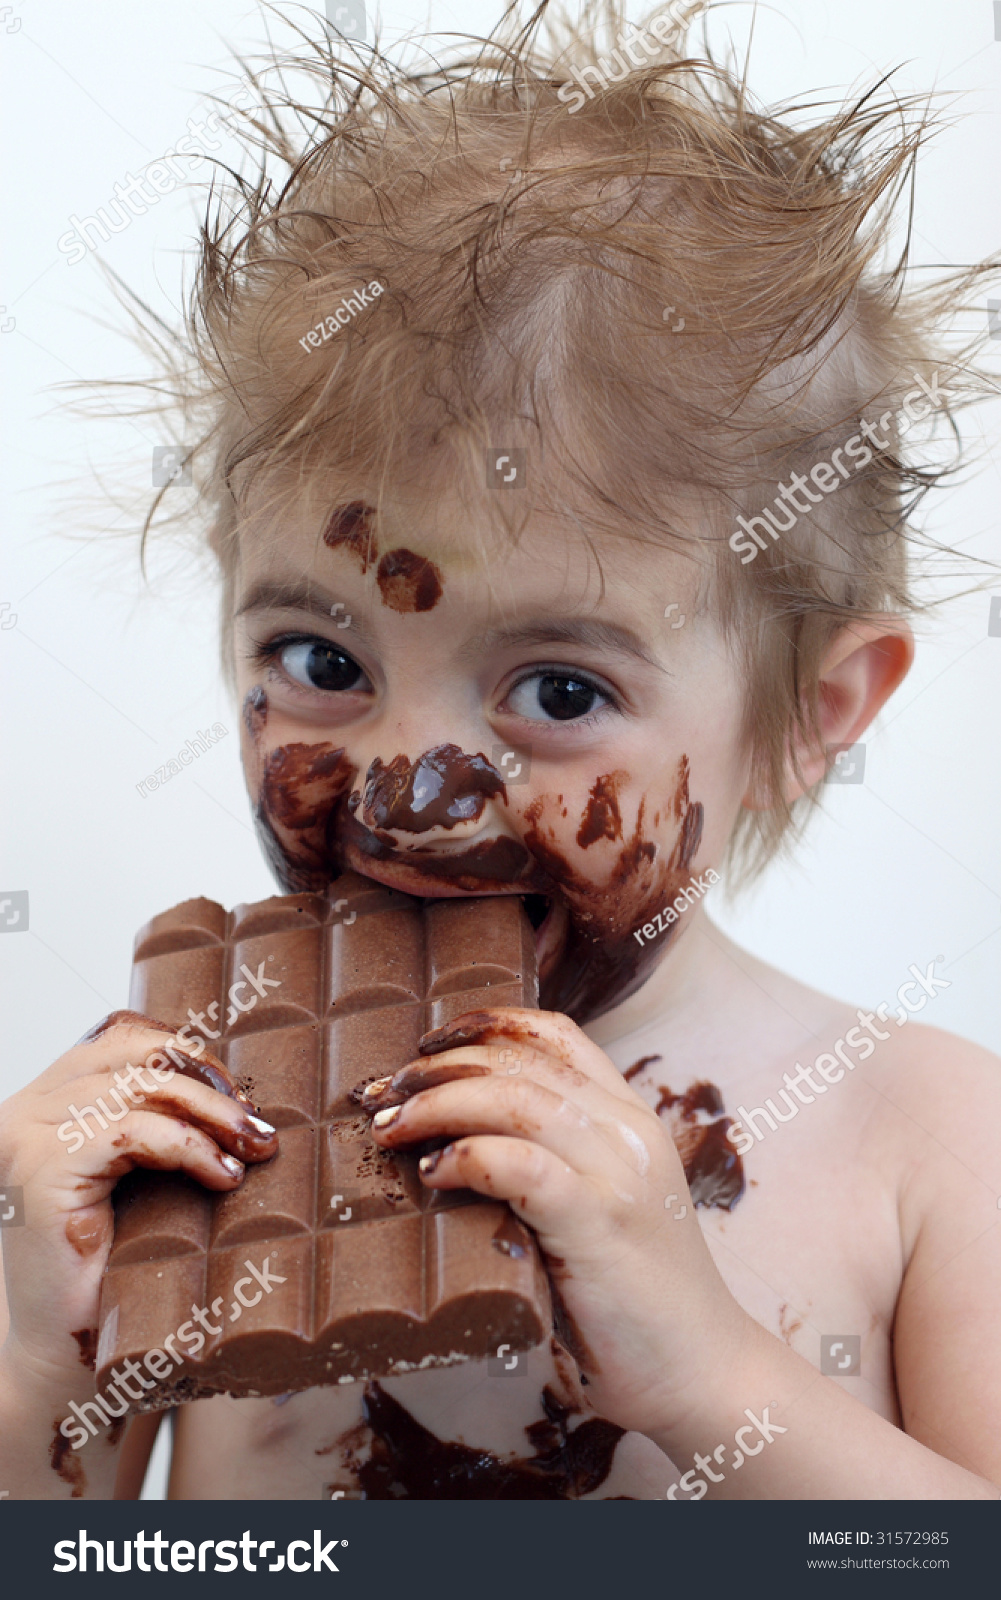 Baby Face Covered Chocolate Stock Photo 31572985 - Shutterstock